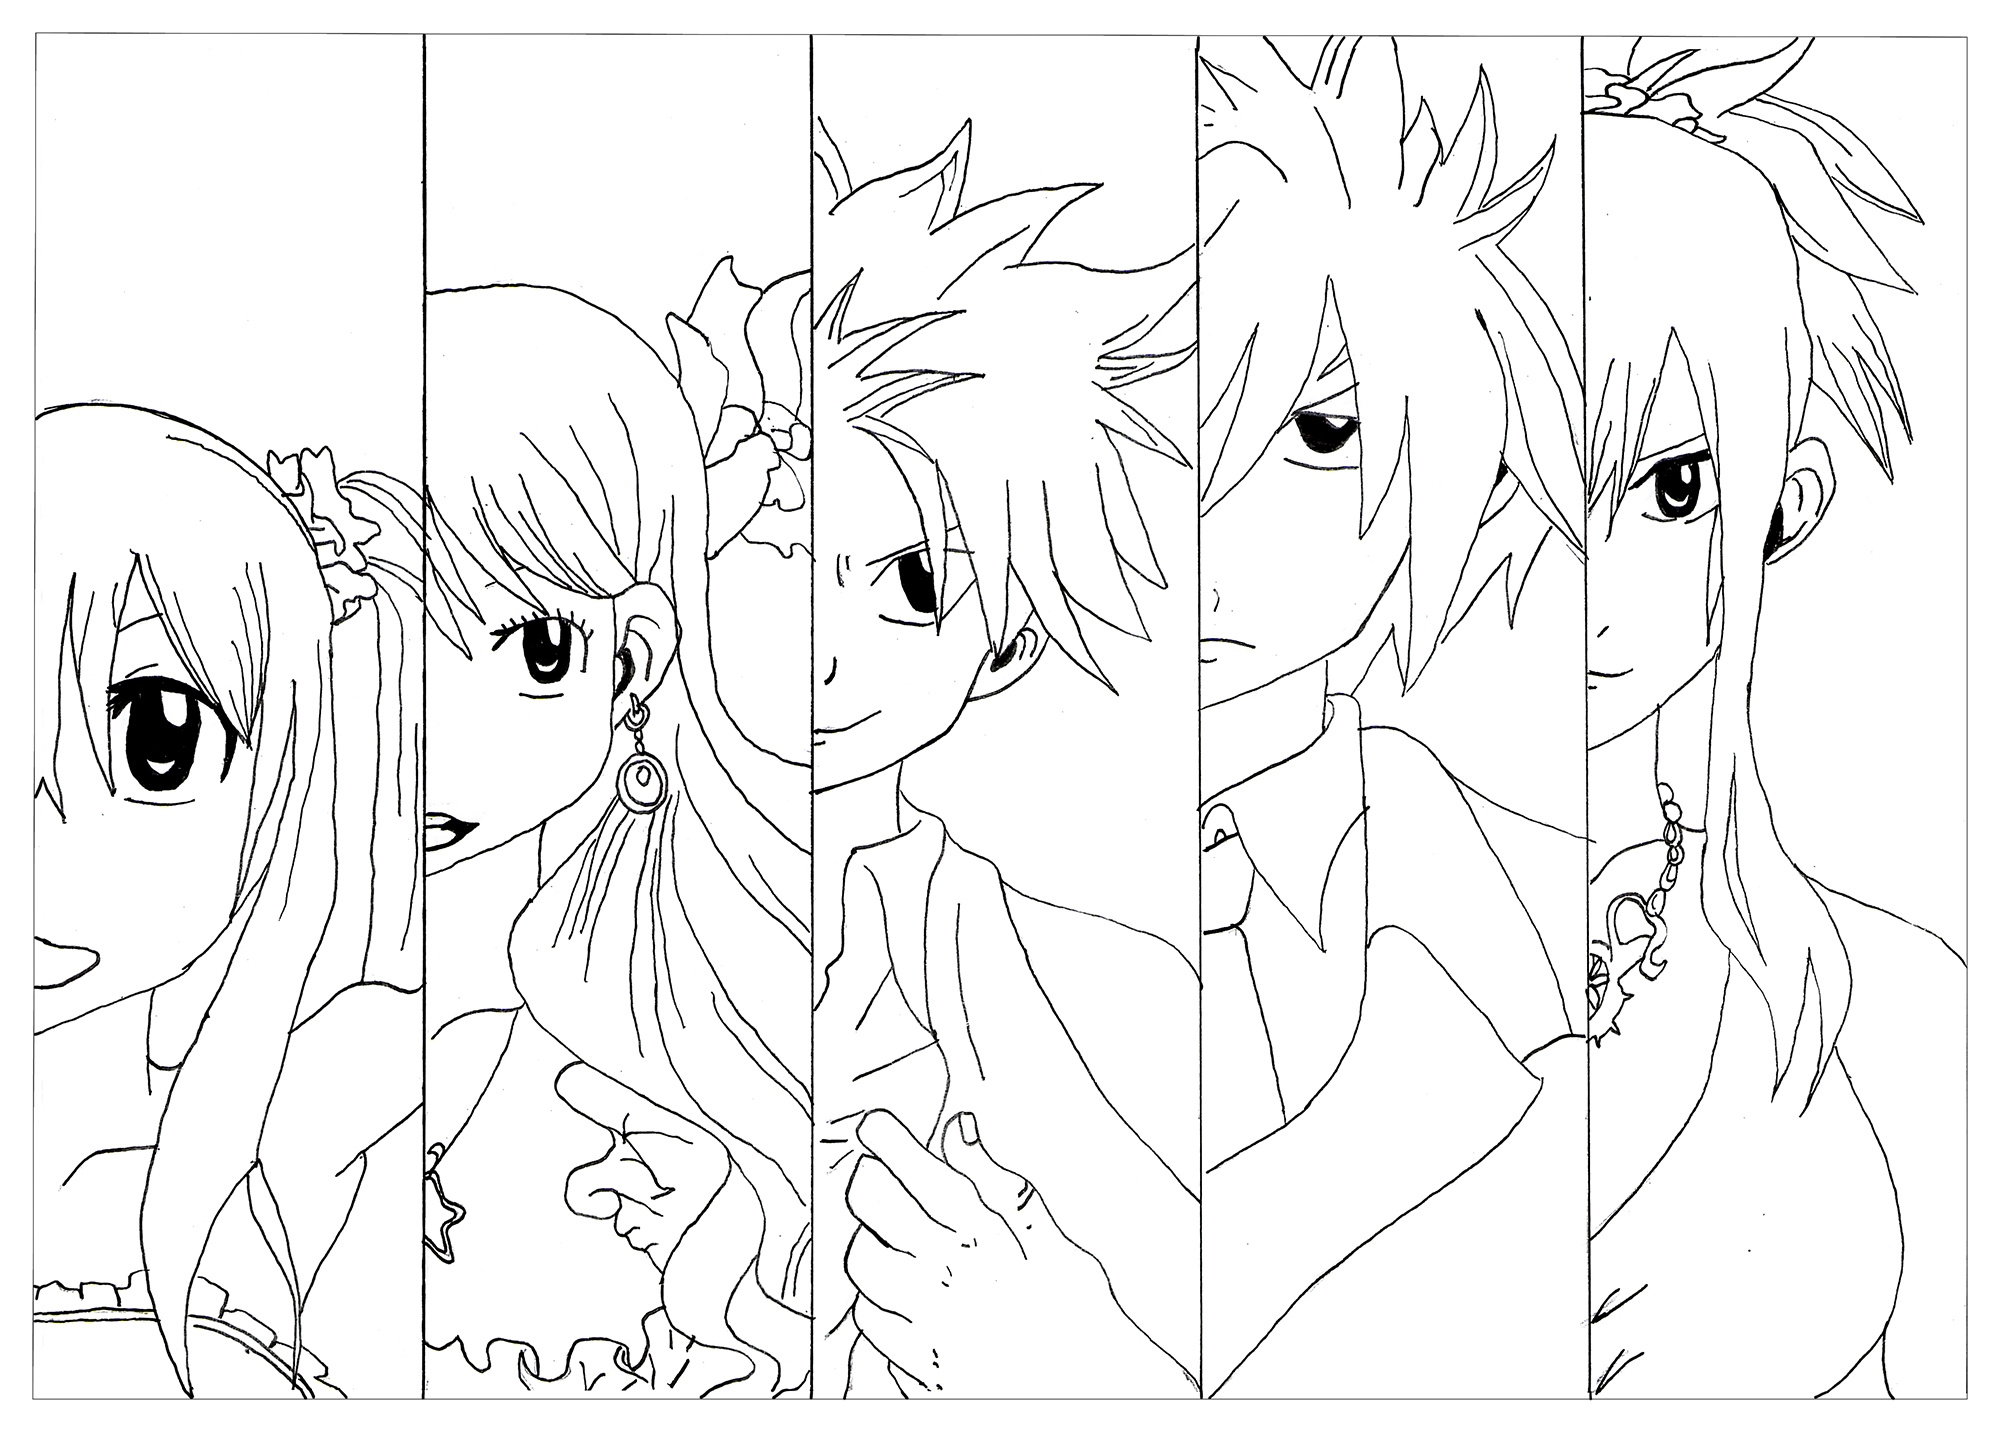 2000x1432 Fairy Tail Manga Coloring Pages Collection Coloring For Kids